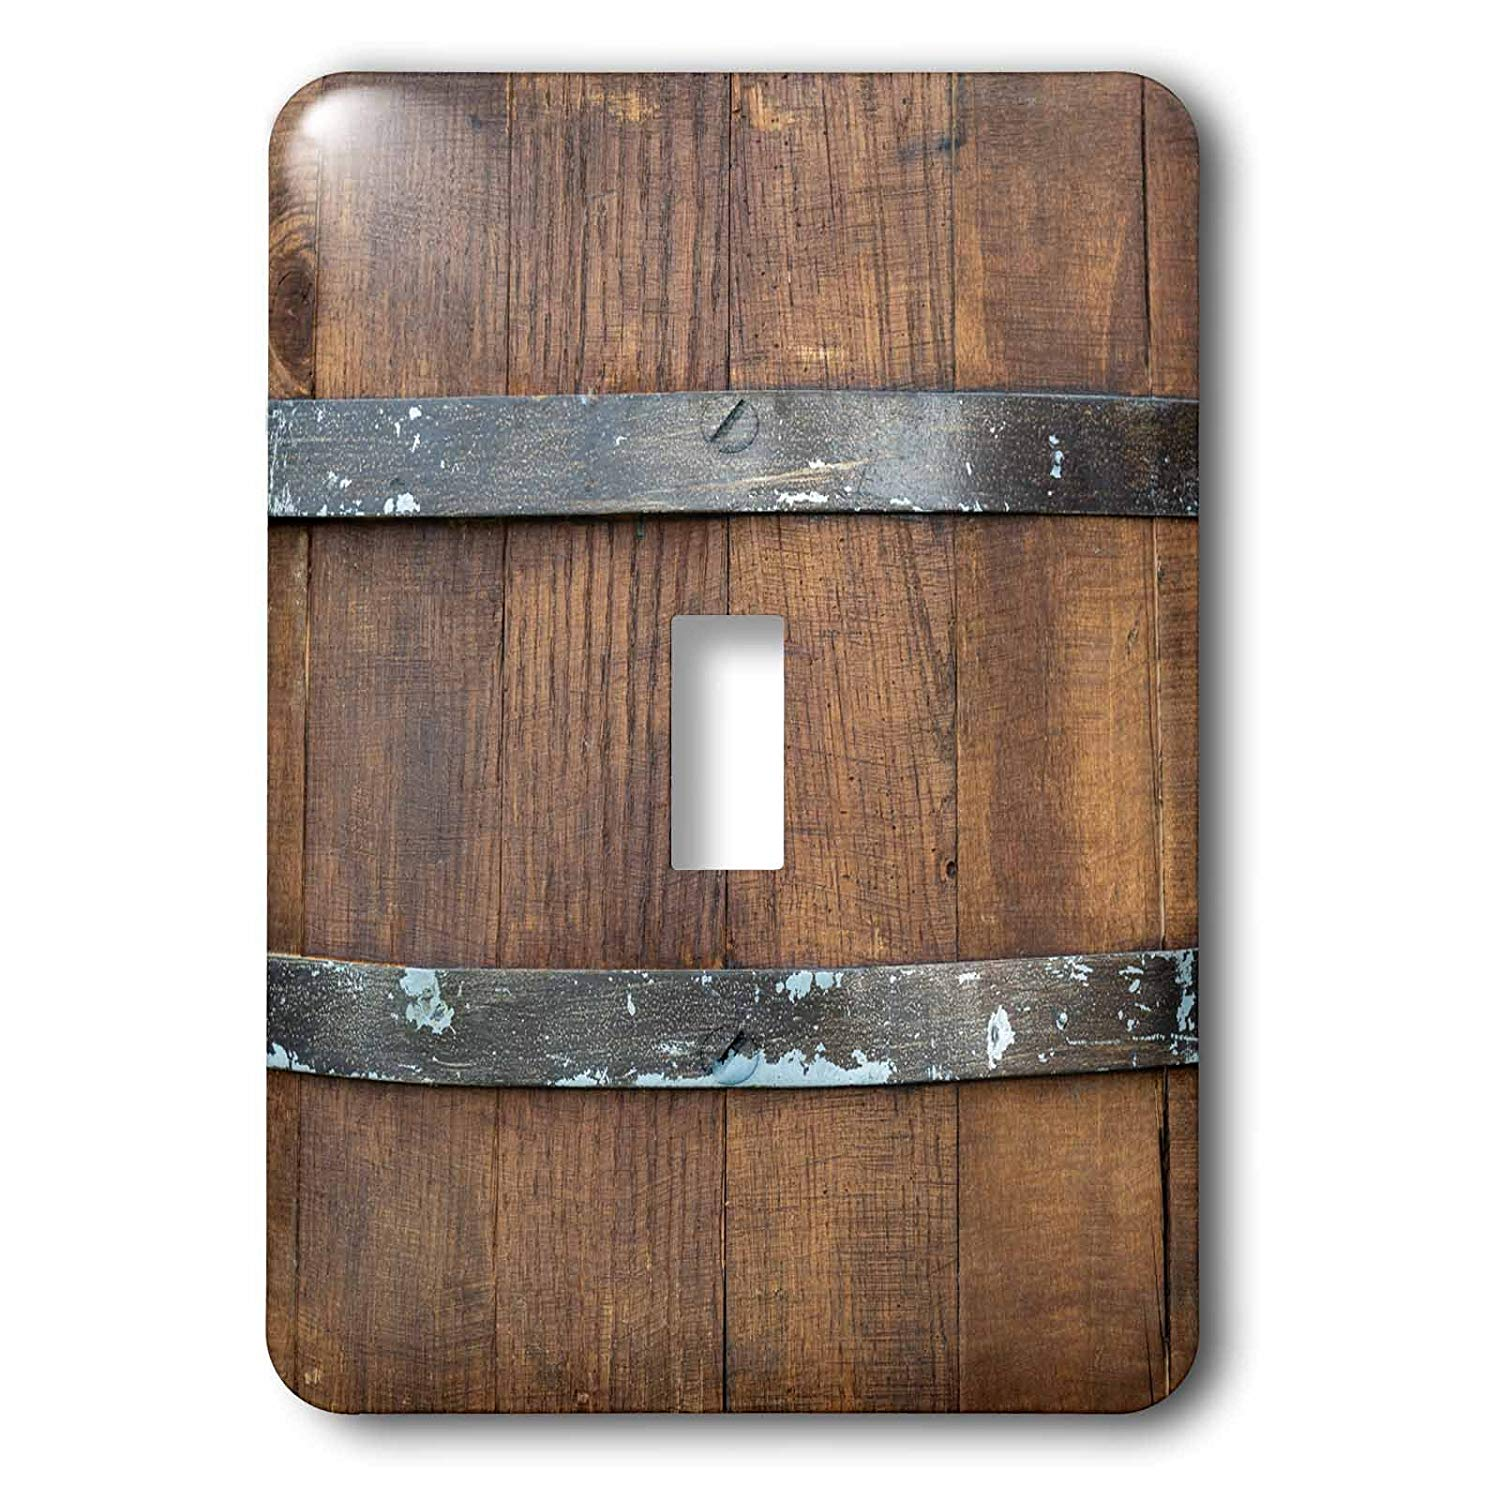 Cheap Wooden Light Switch Find Wooden Light Switch Deals On Line At